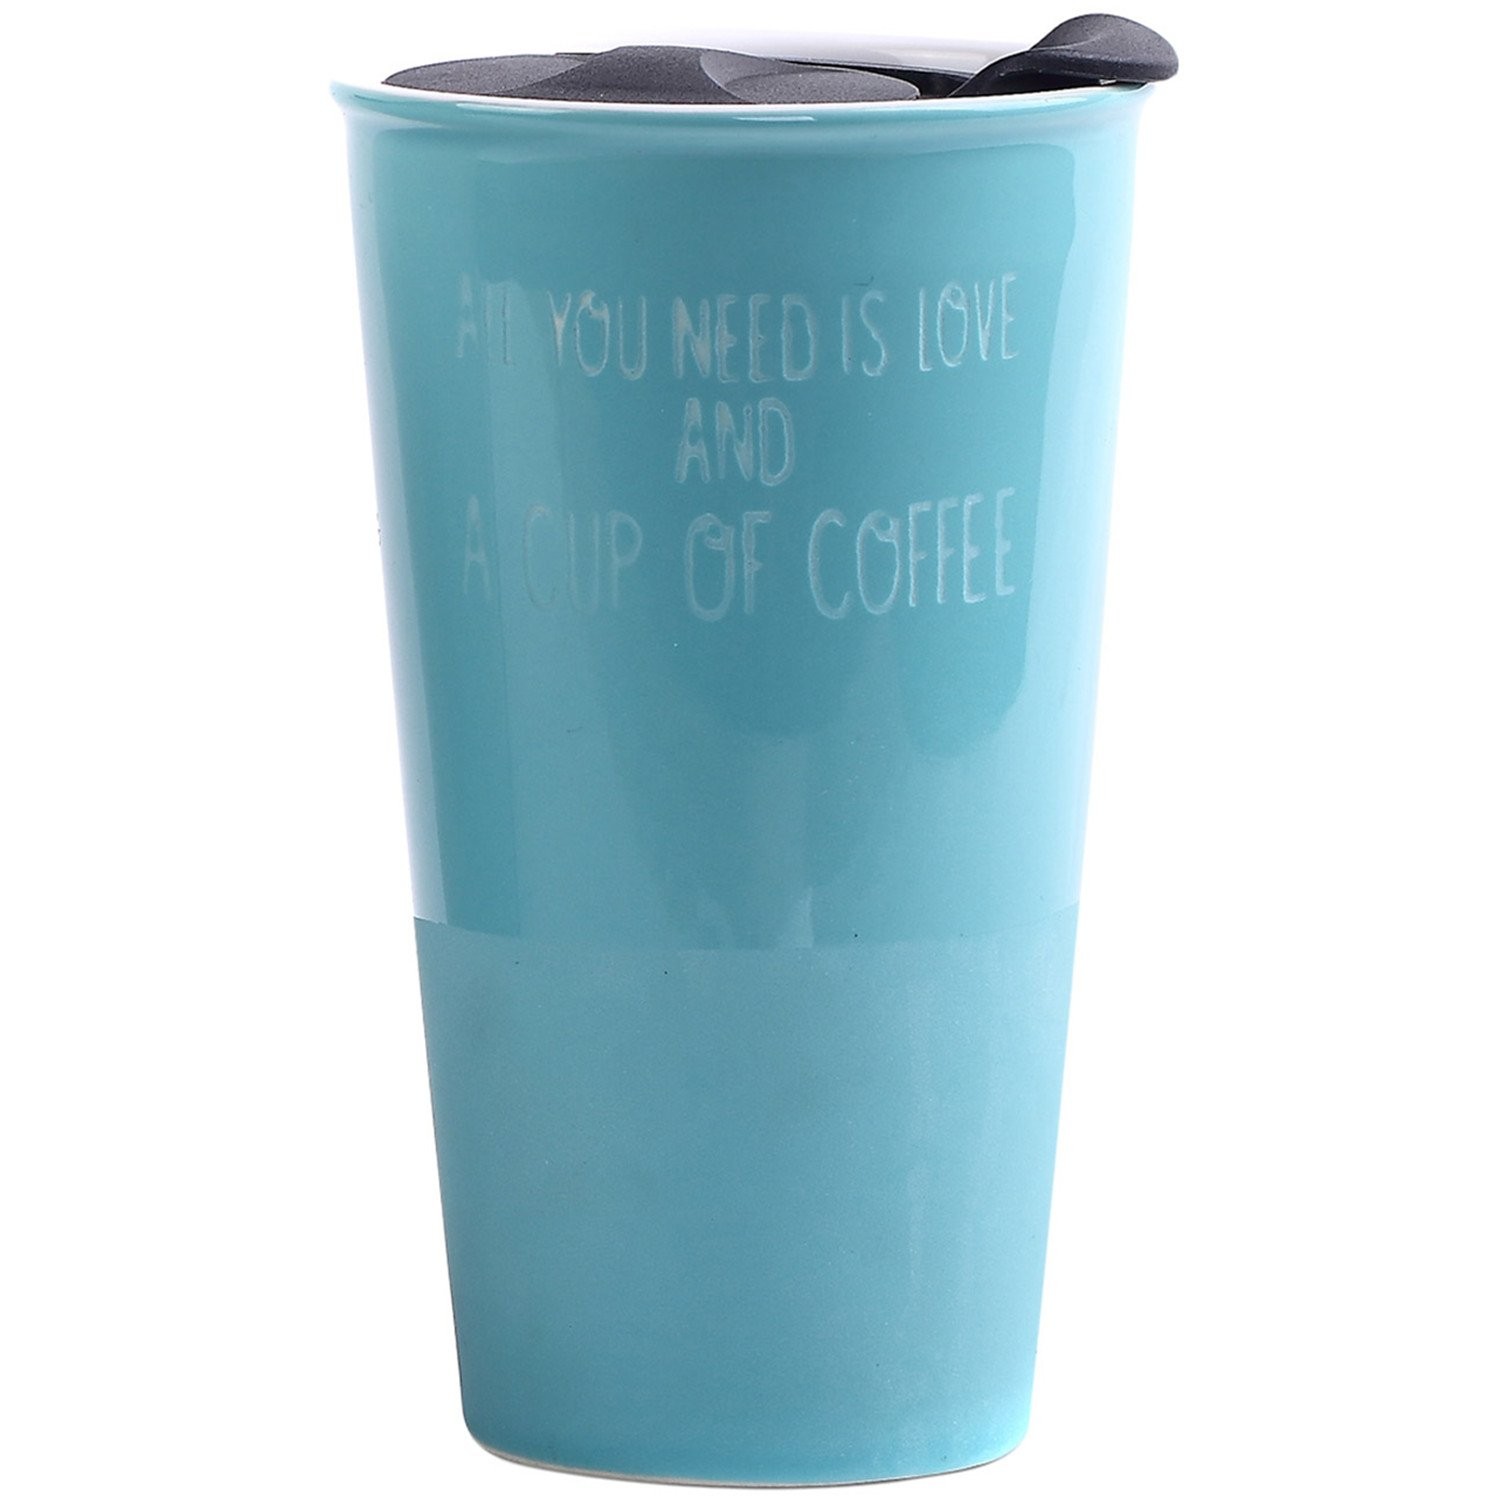 CEDAR HOME Travel Coffee Ceramic Mug Tea Cup Double Wall Porcelain With Lid 11oz., Teal